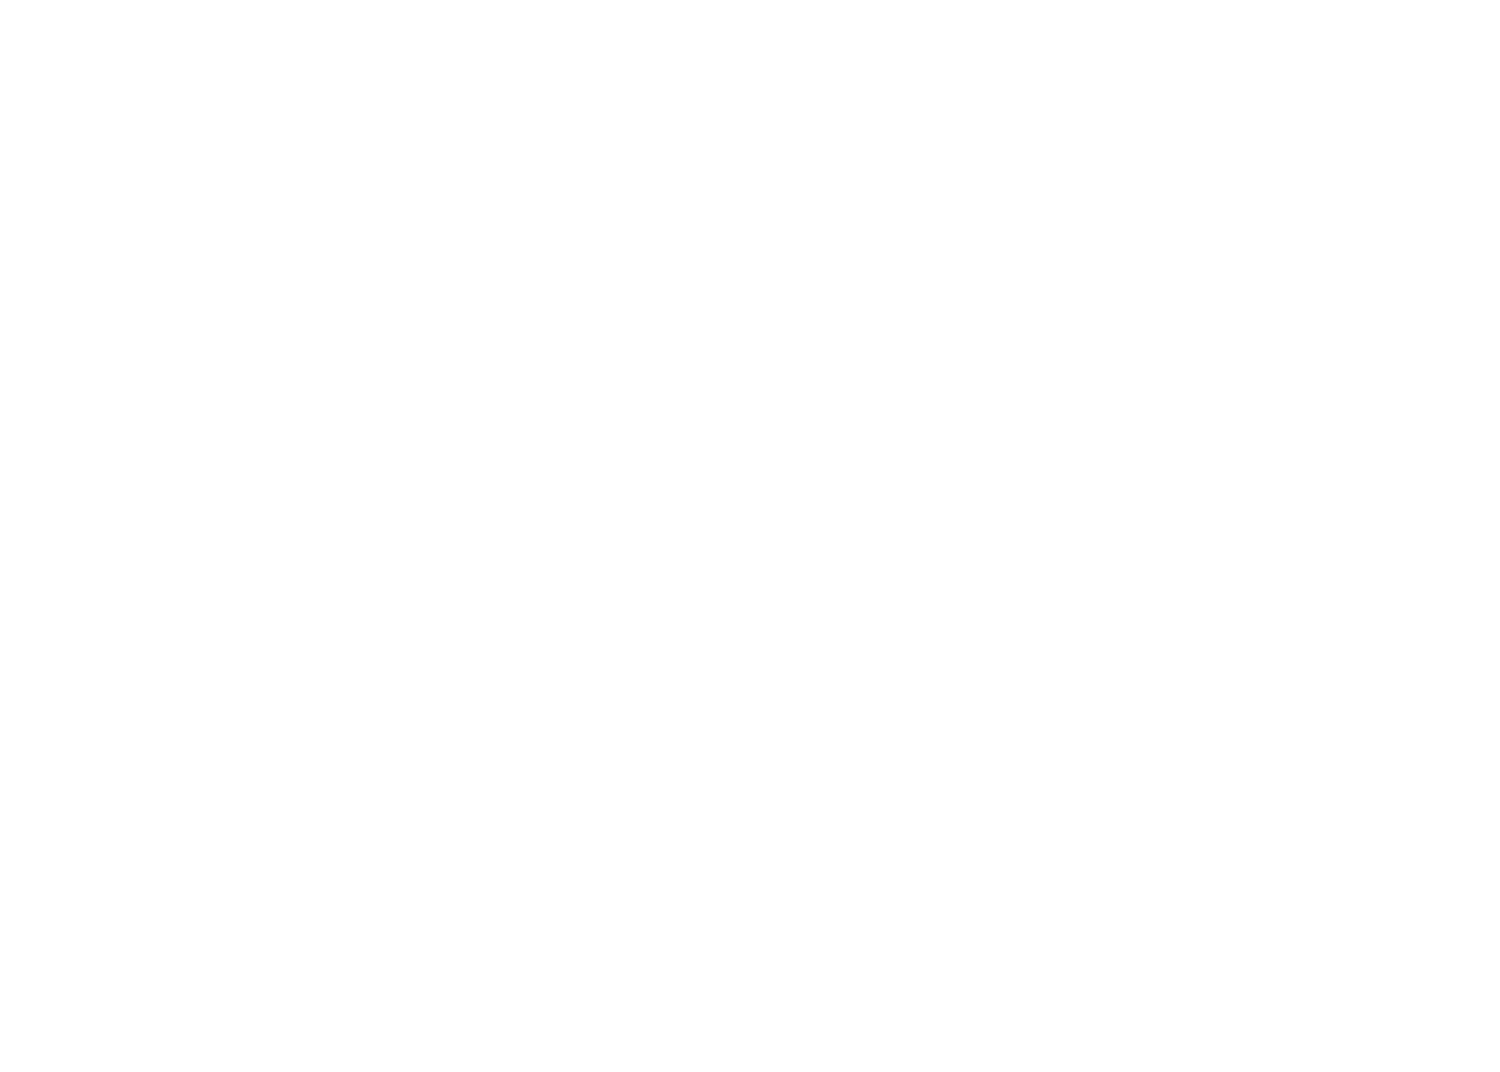 The Story Catchers